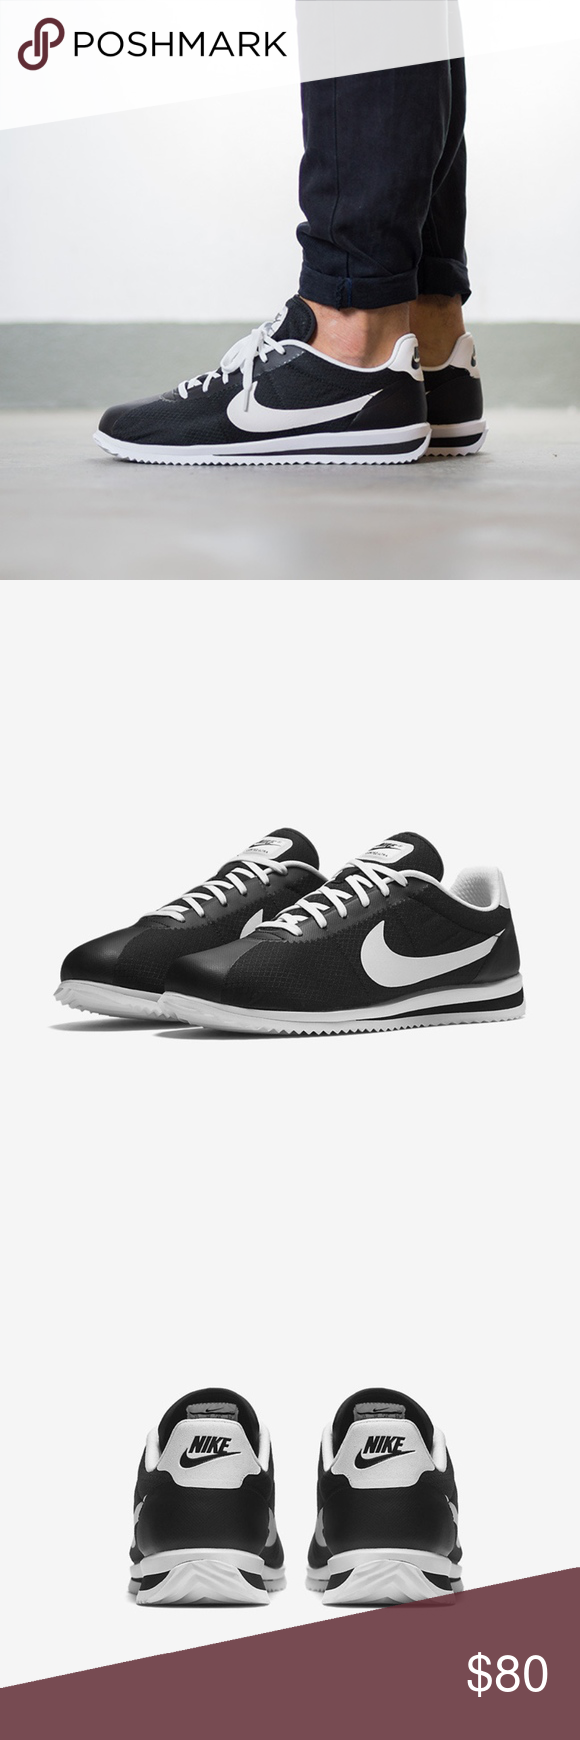 mens nike cortez ultra ultra cortez casual Chaussures cce533